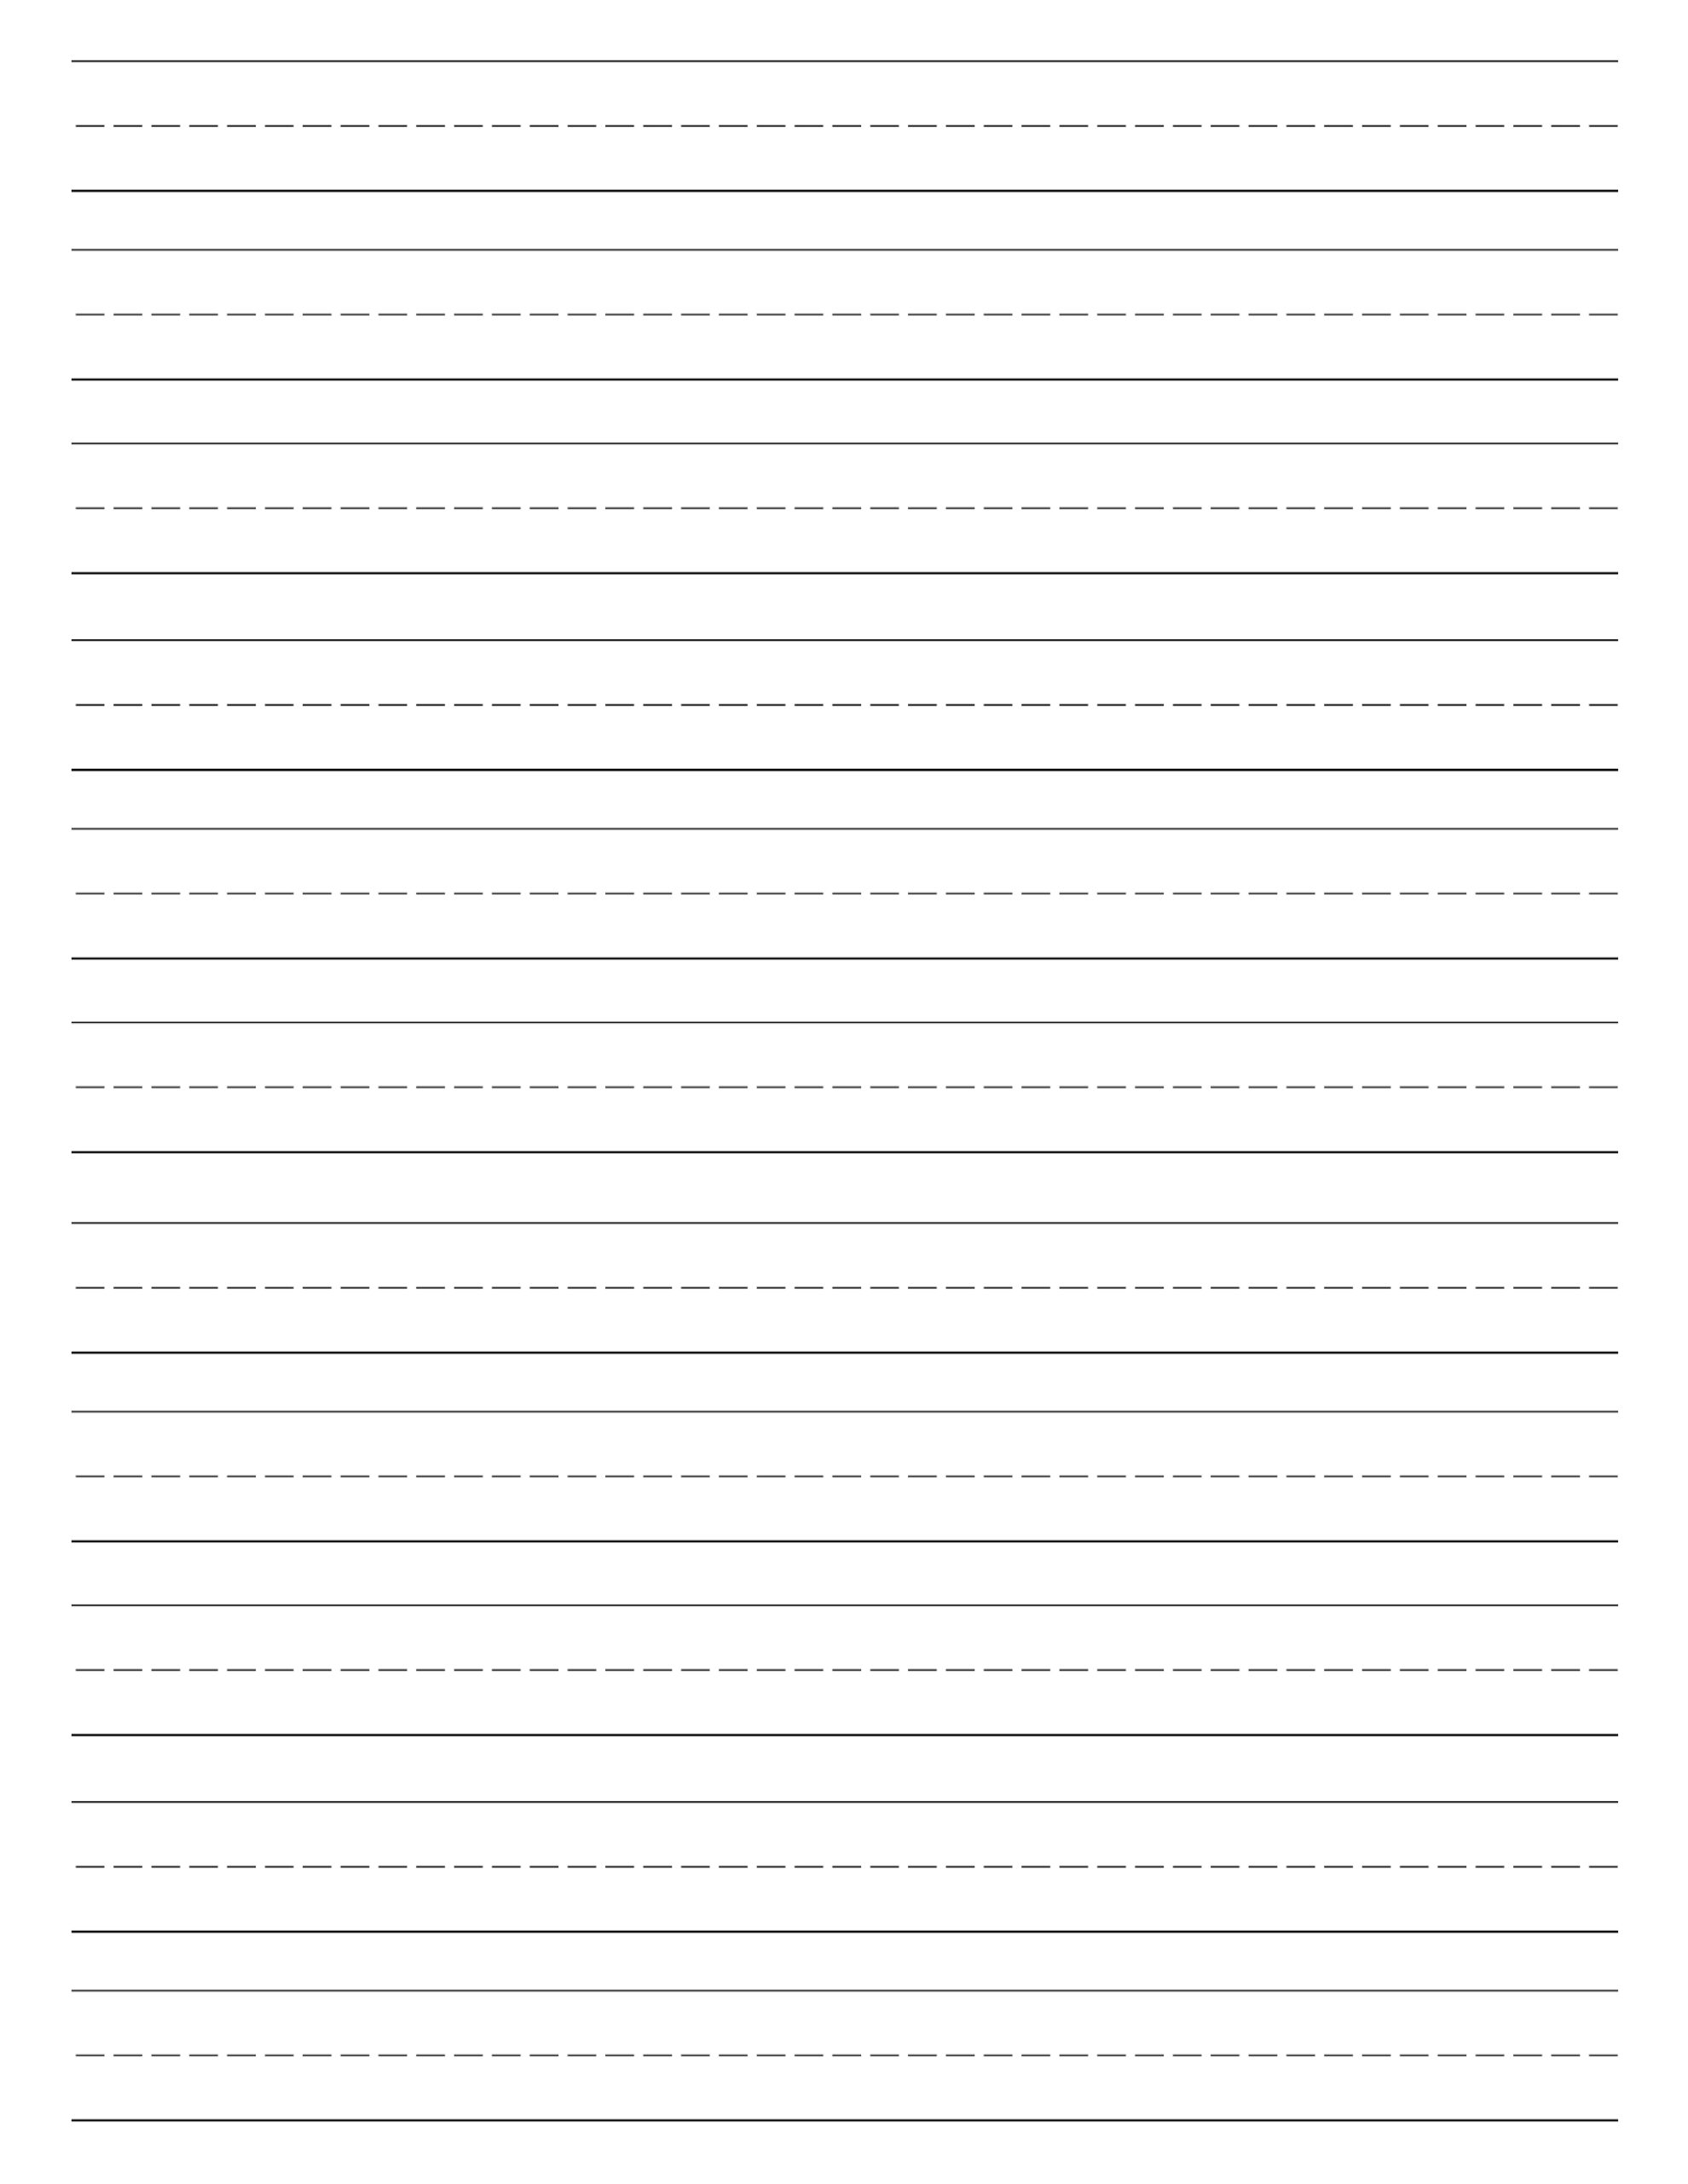 For Best Results, Click The Image Or Link To Enlarge The Printable And  Download The Image To Your Computer Before Printing. I Find It Easiest To  Drag And ...  Download Lined Paper